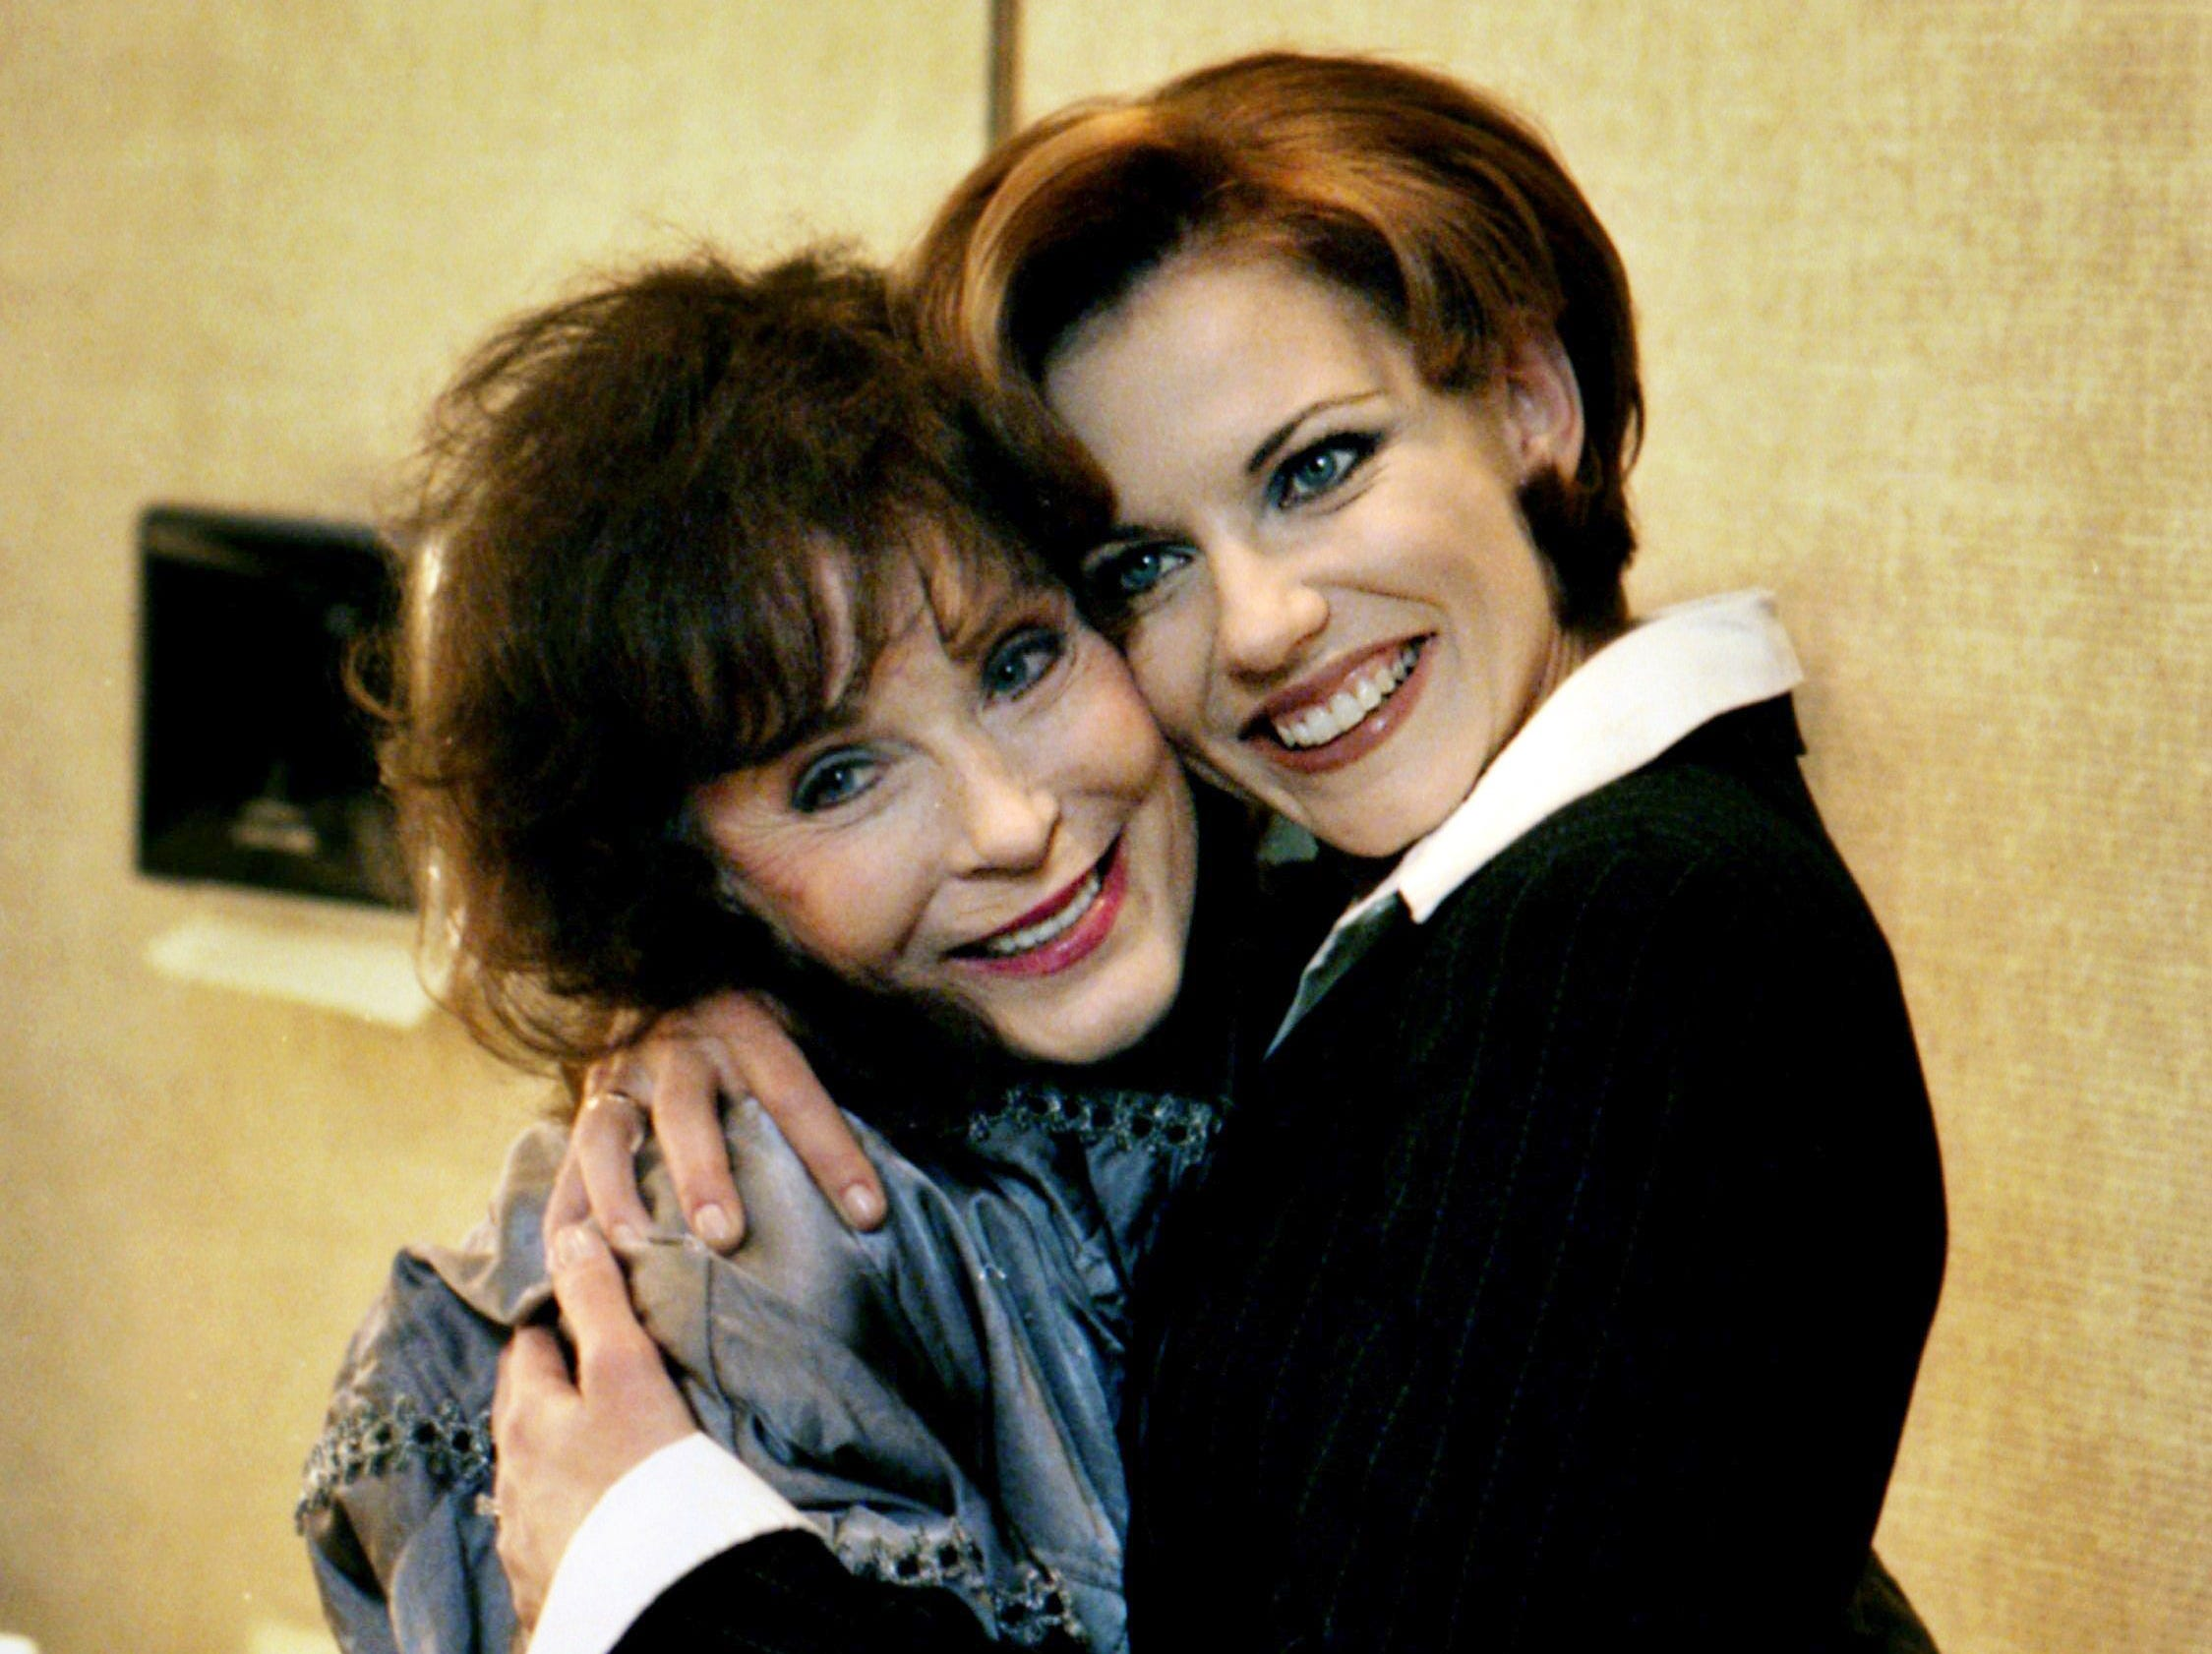 Martina McBride, right, gets a hug from Loretta Lynn backstage at the Opry on the night that McBride was inducted into the Grand Old Opry during its 70th anniversary celebration Nov. 30, 1995.